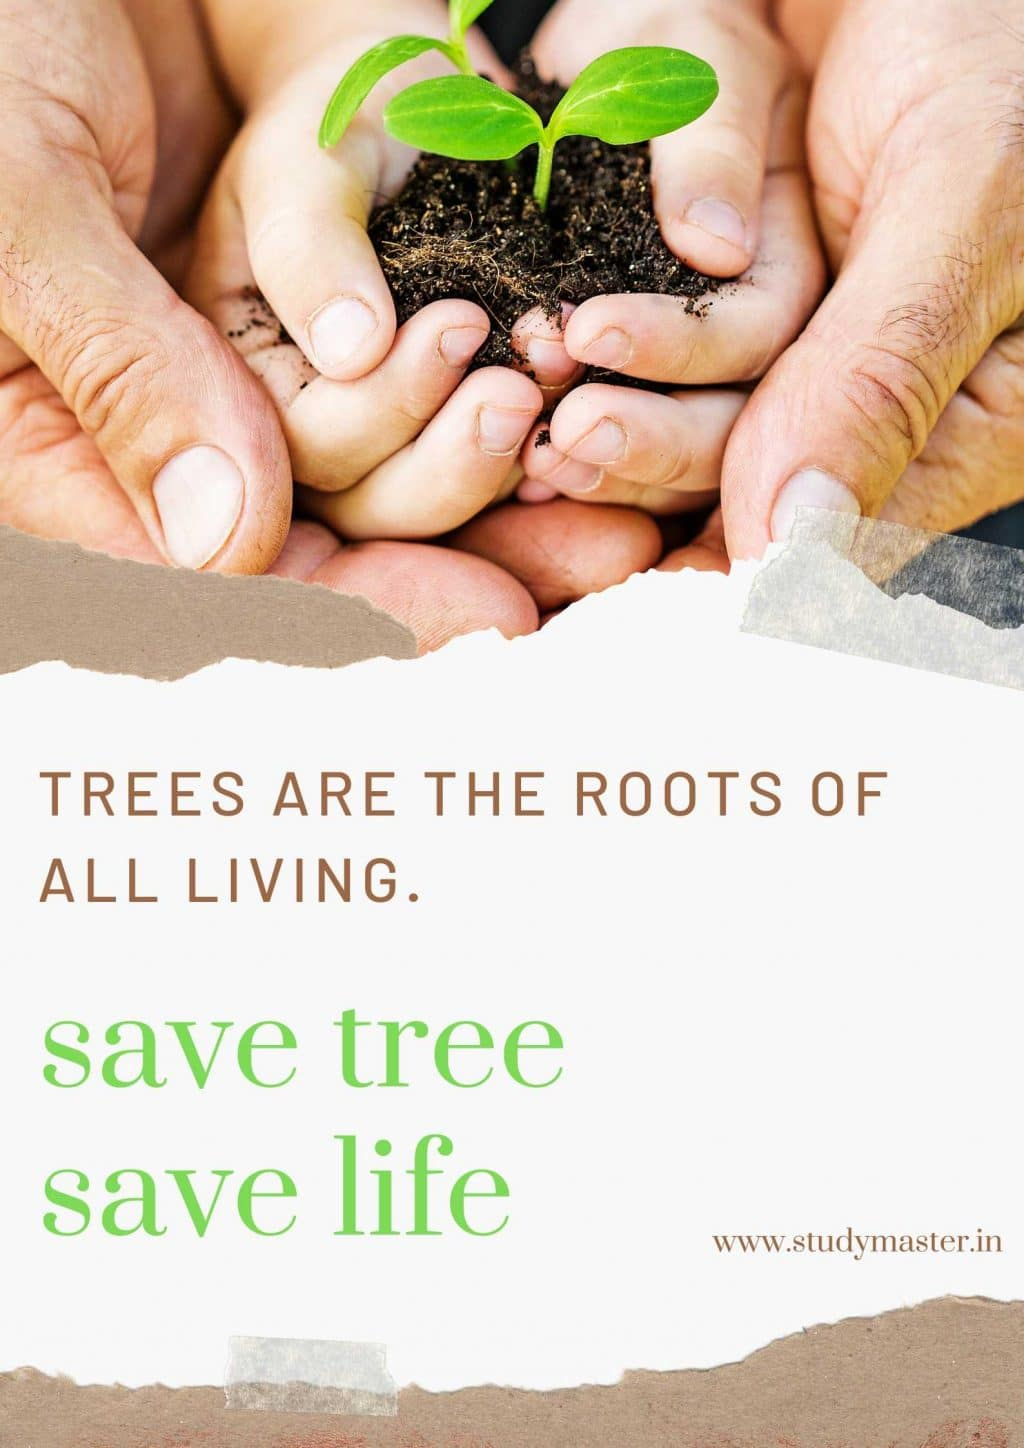 poster for save trees